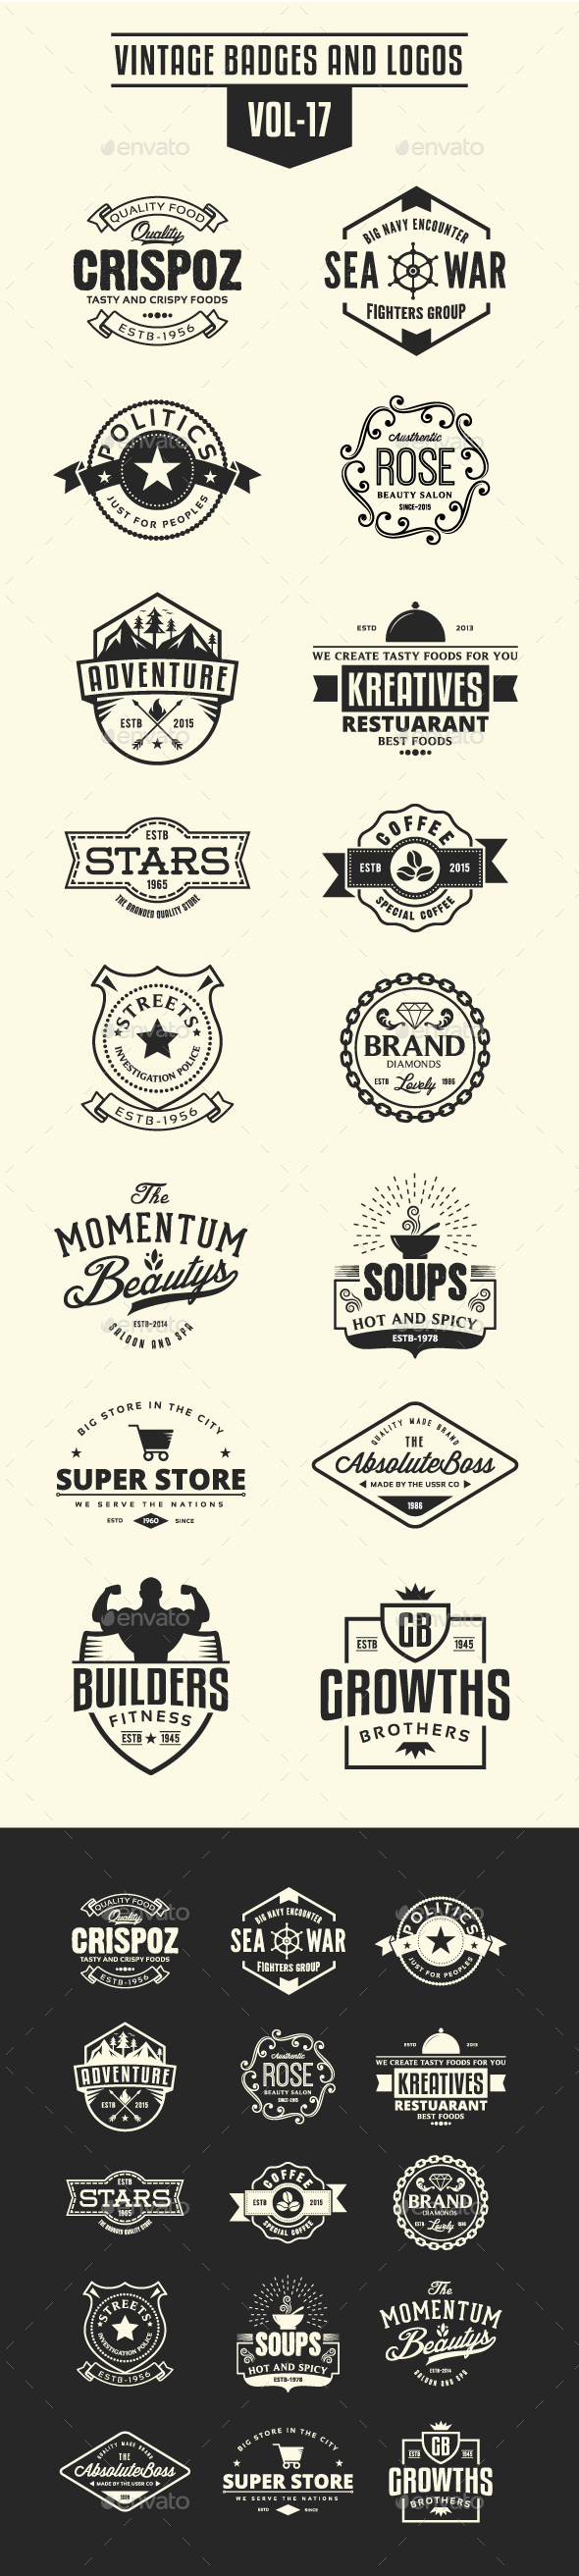 GraphicRiver Vintage Badges and Logos Vol-17 21197468